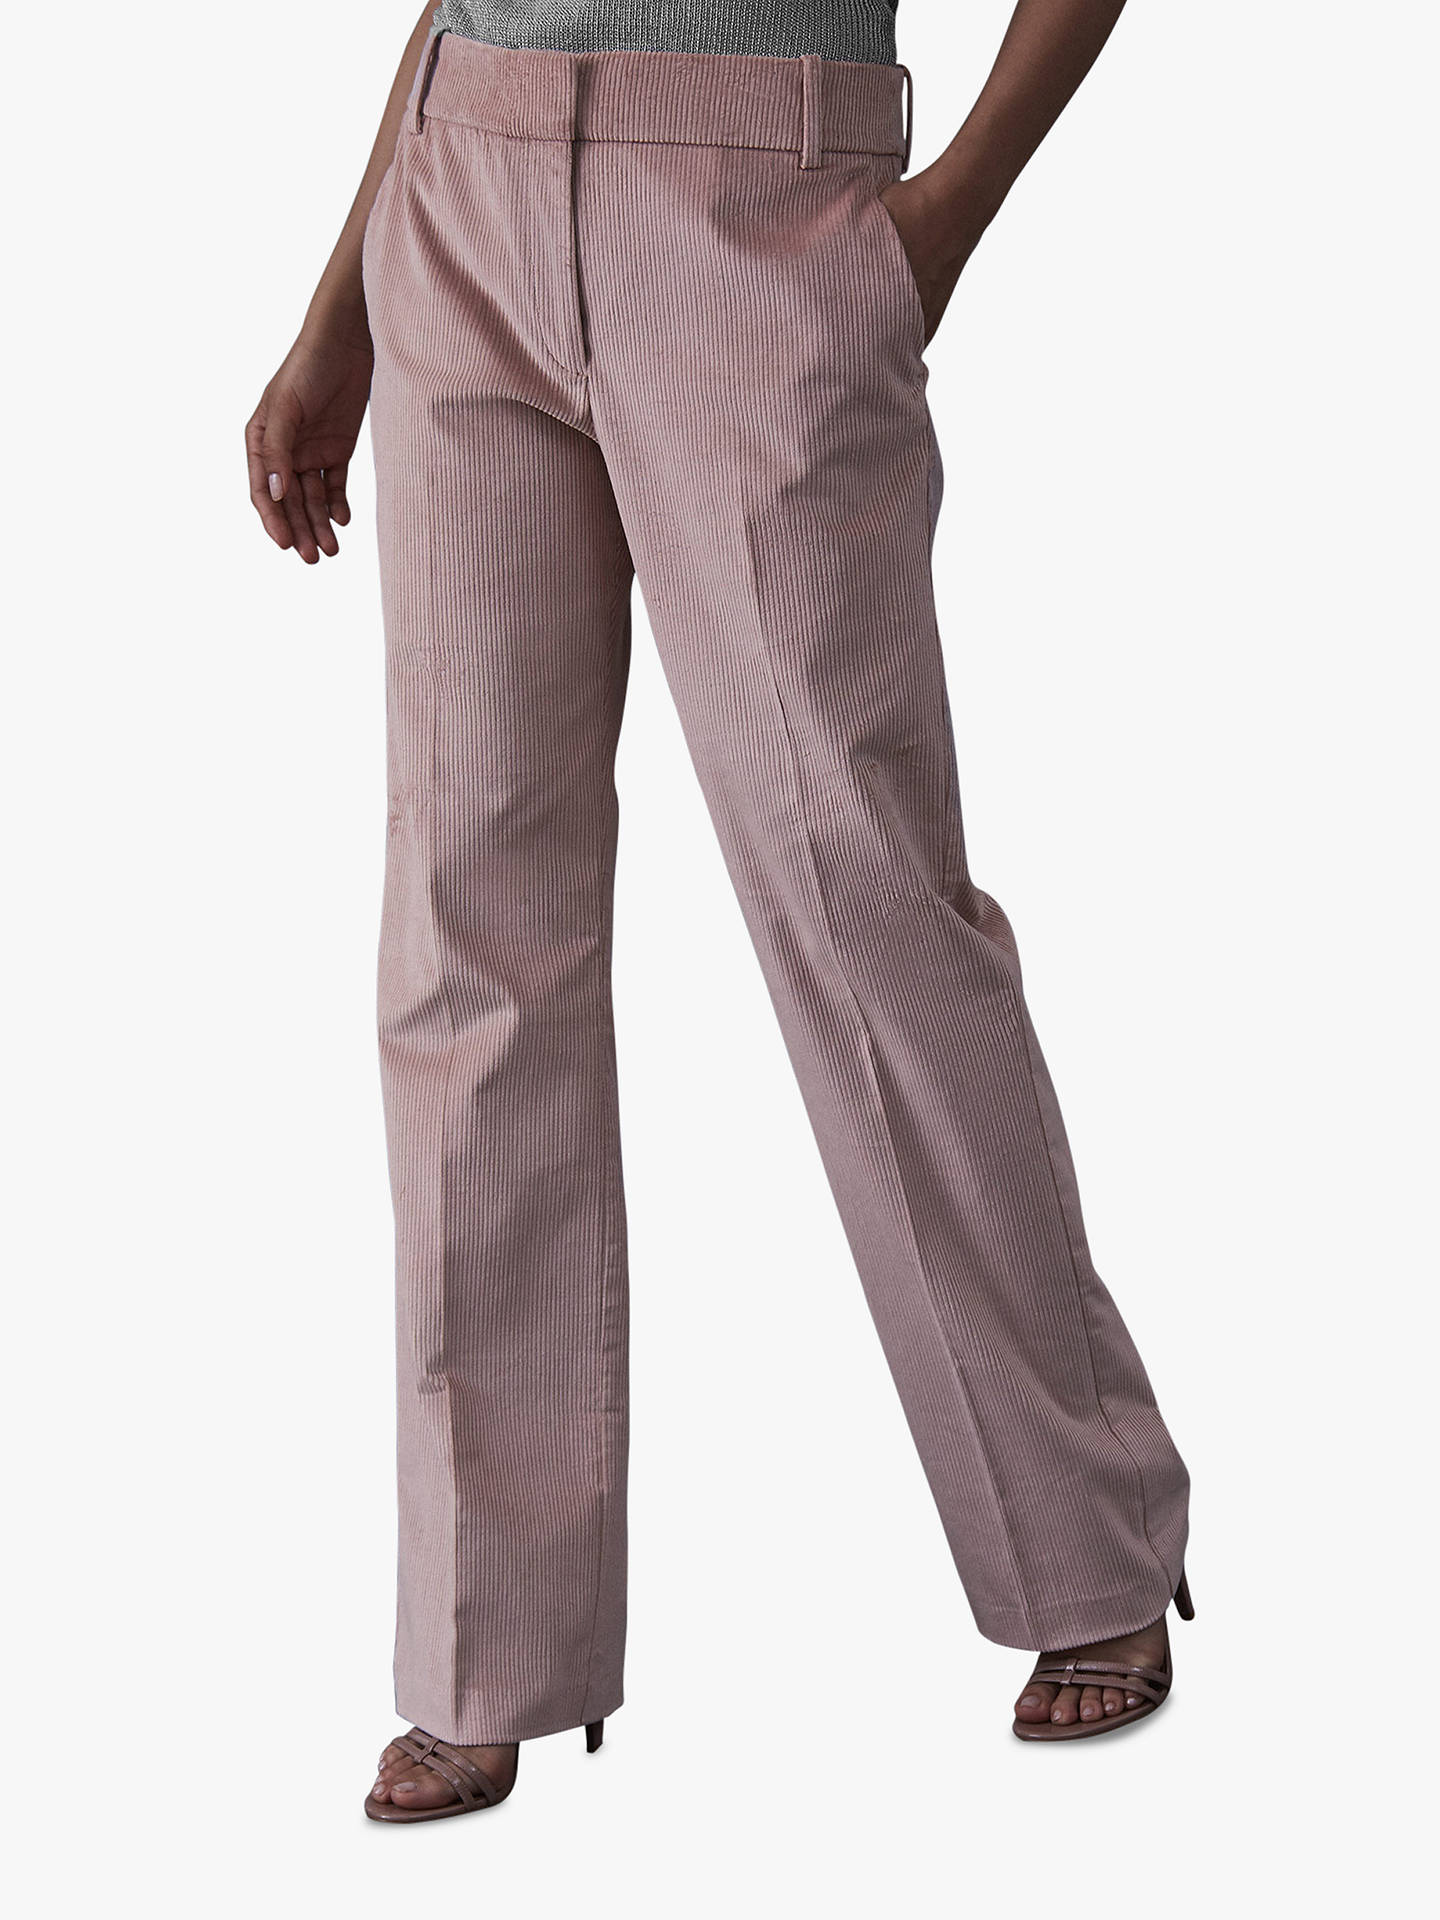 BuyReiss Carie Corduroy Wide Leg Trousers, Blush, 6 Online at johnlewis.com